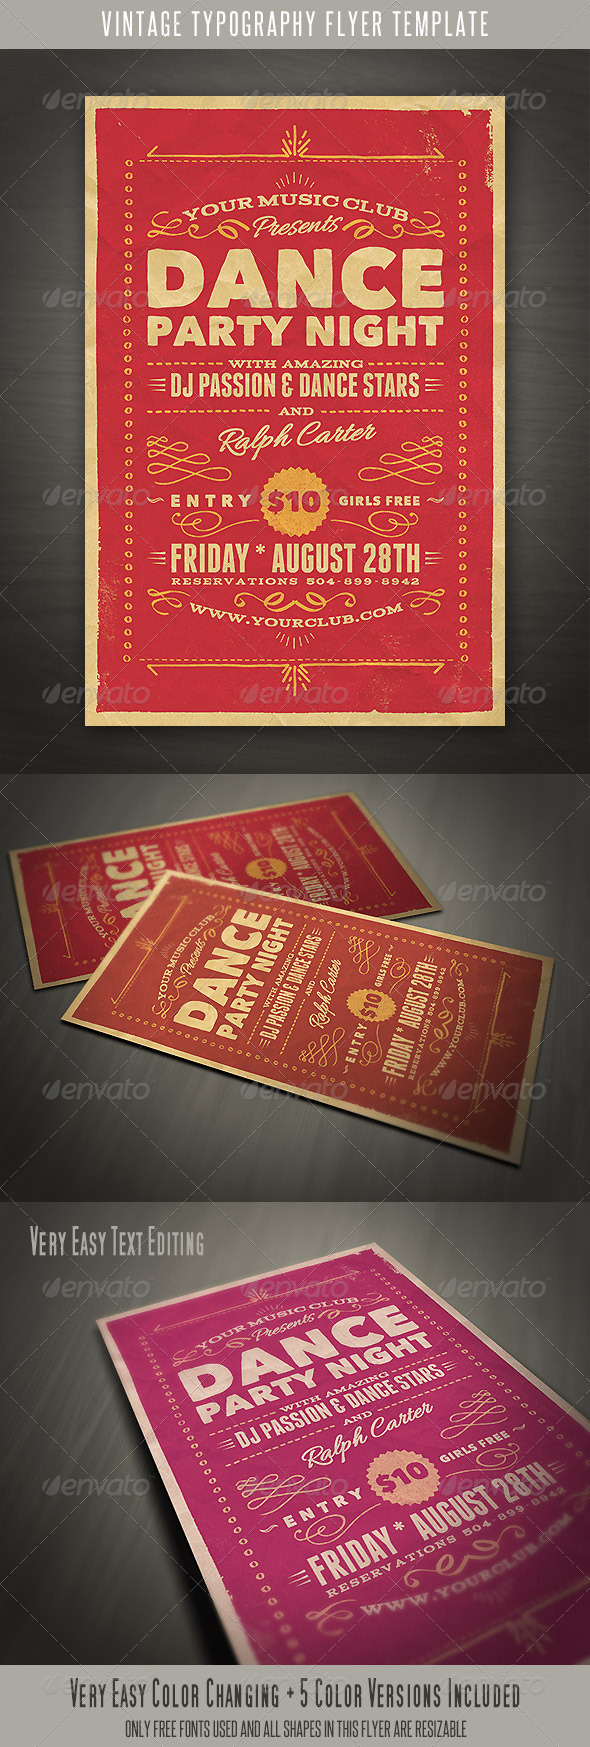 GraphicRiver Vintage Style Typography Flyer 5246393